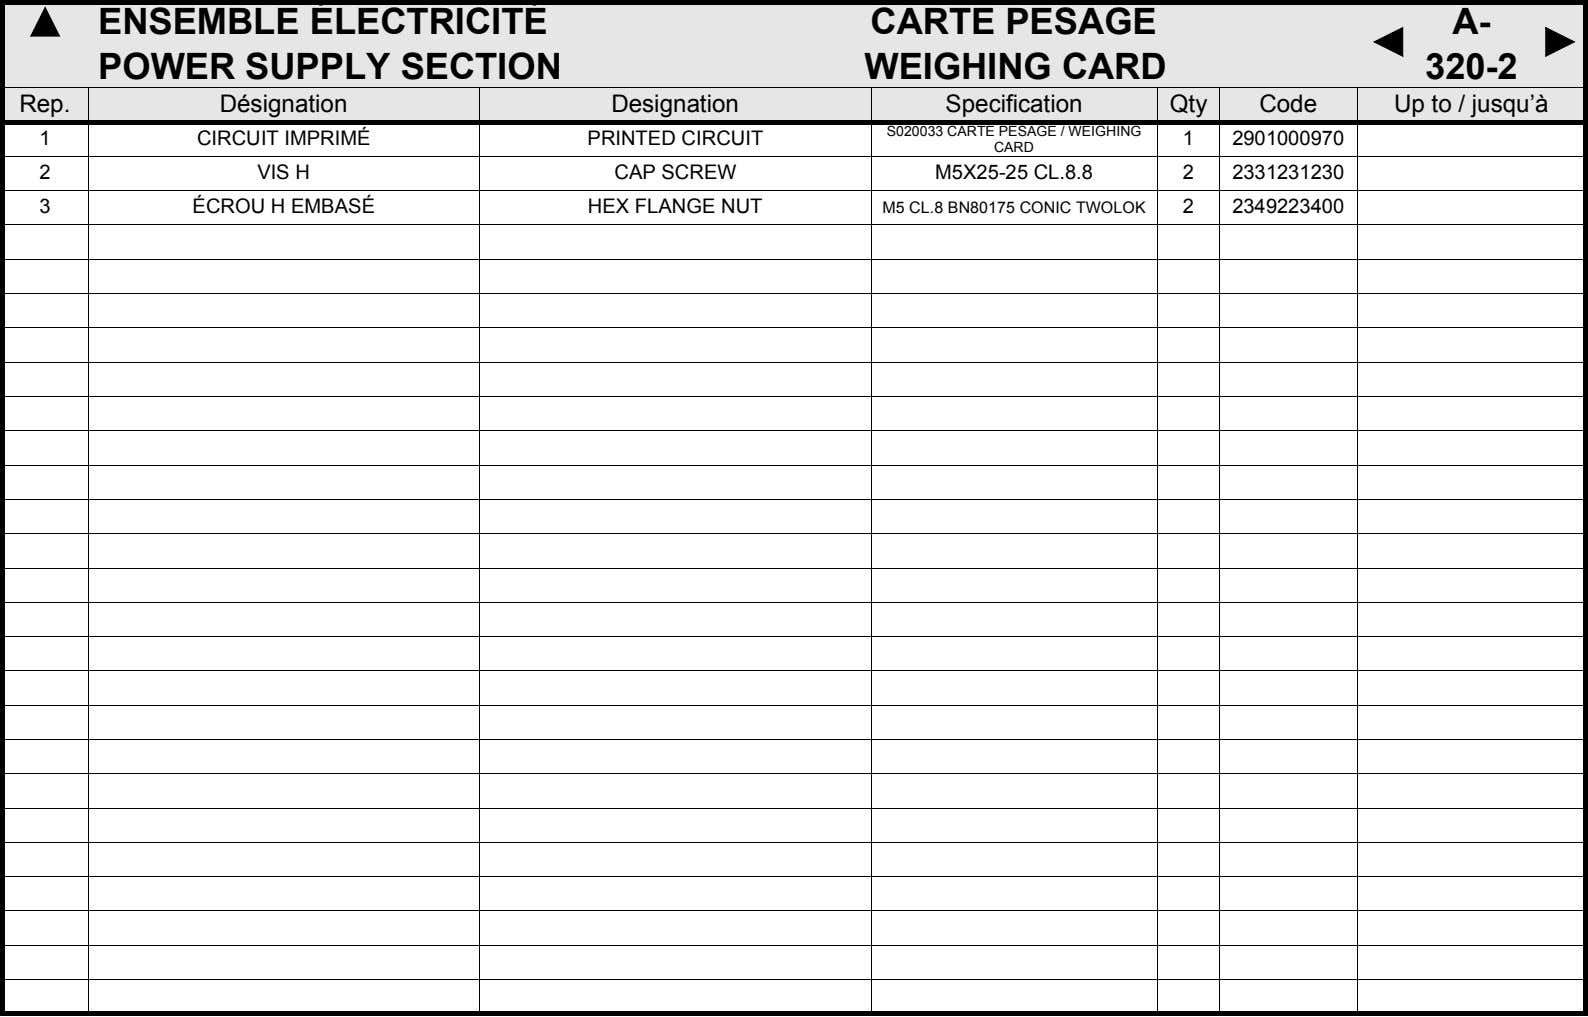 ENSEMBLE ÉLECTRICITÉ POWER SUPPLY SECTION CARTE PESAGE WEIGHING CARD A- 320-2 Rep. Désignation Designation